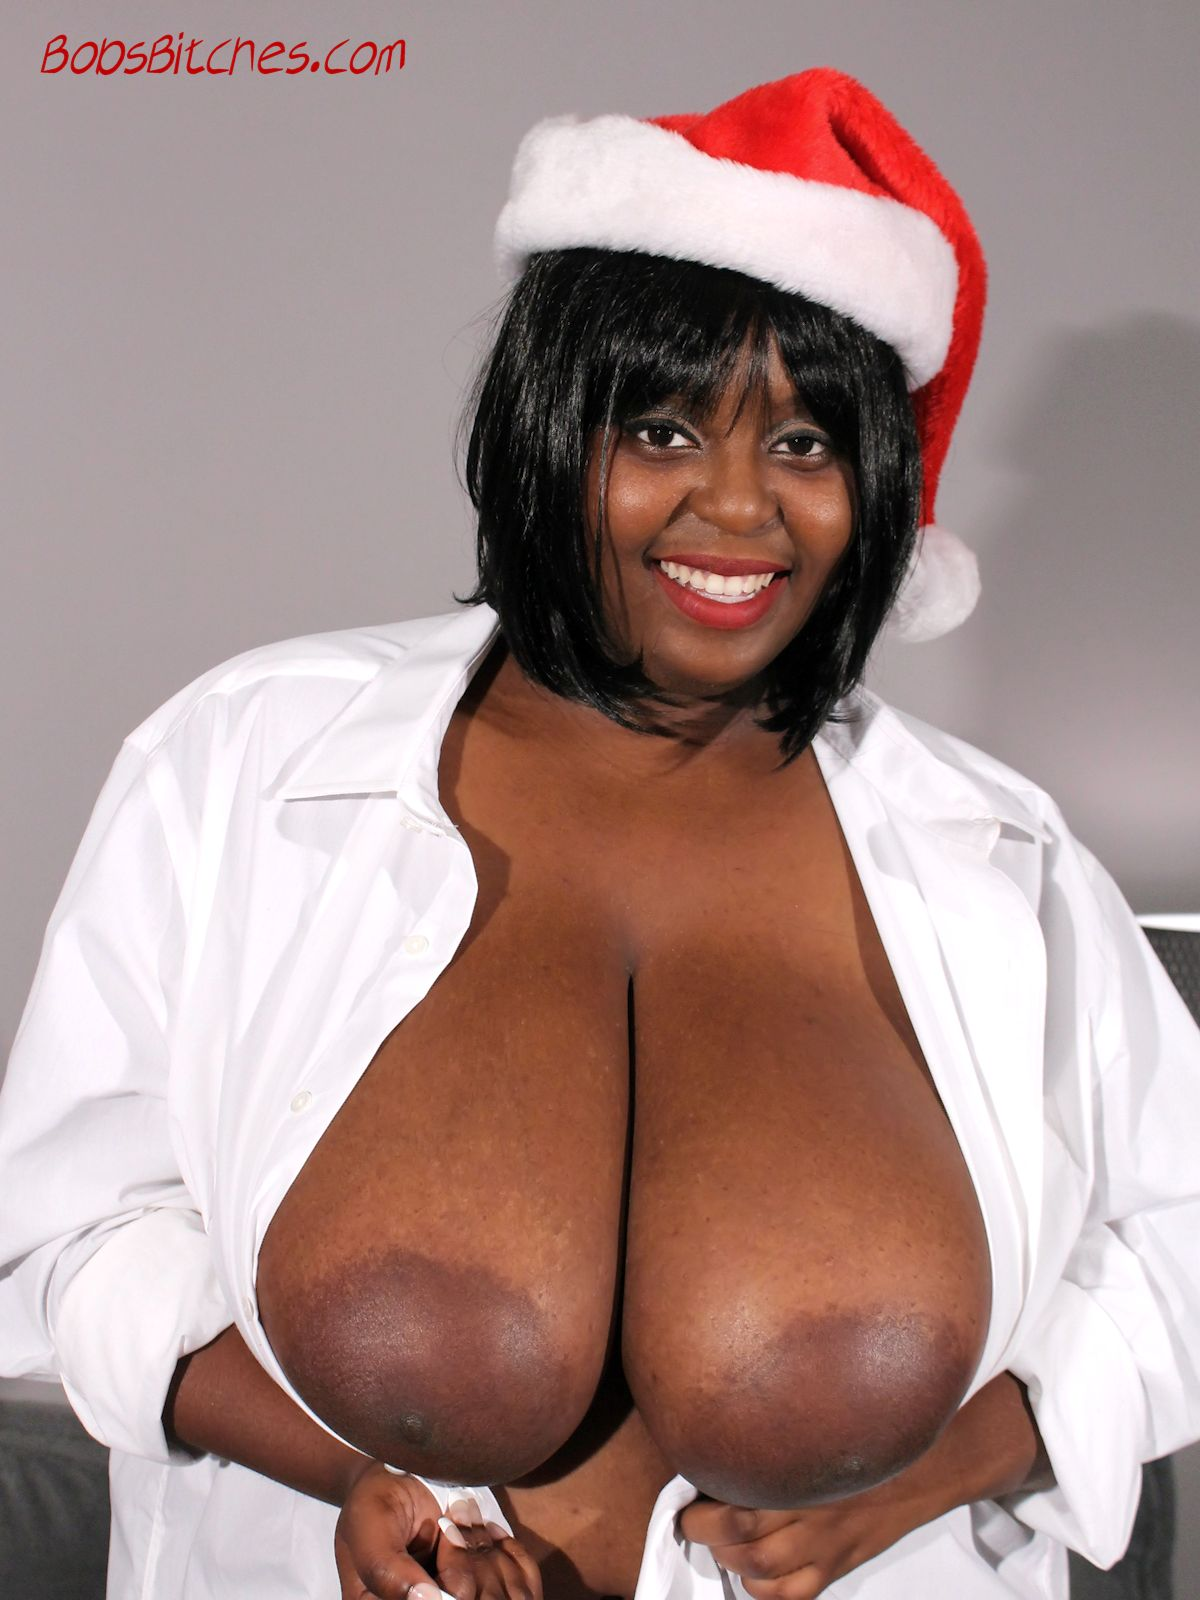 Big black tit, Montoya Hills, exposes her Christmas pillows and large areolas.